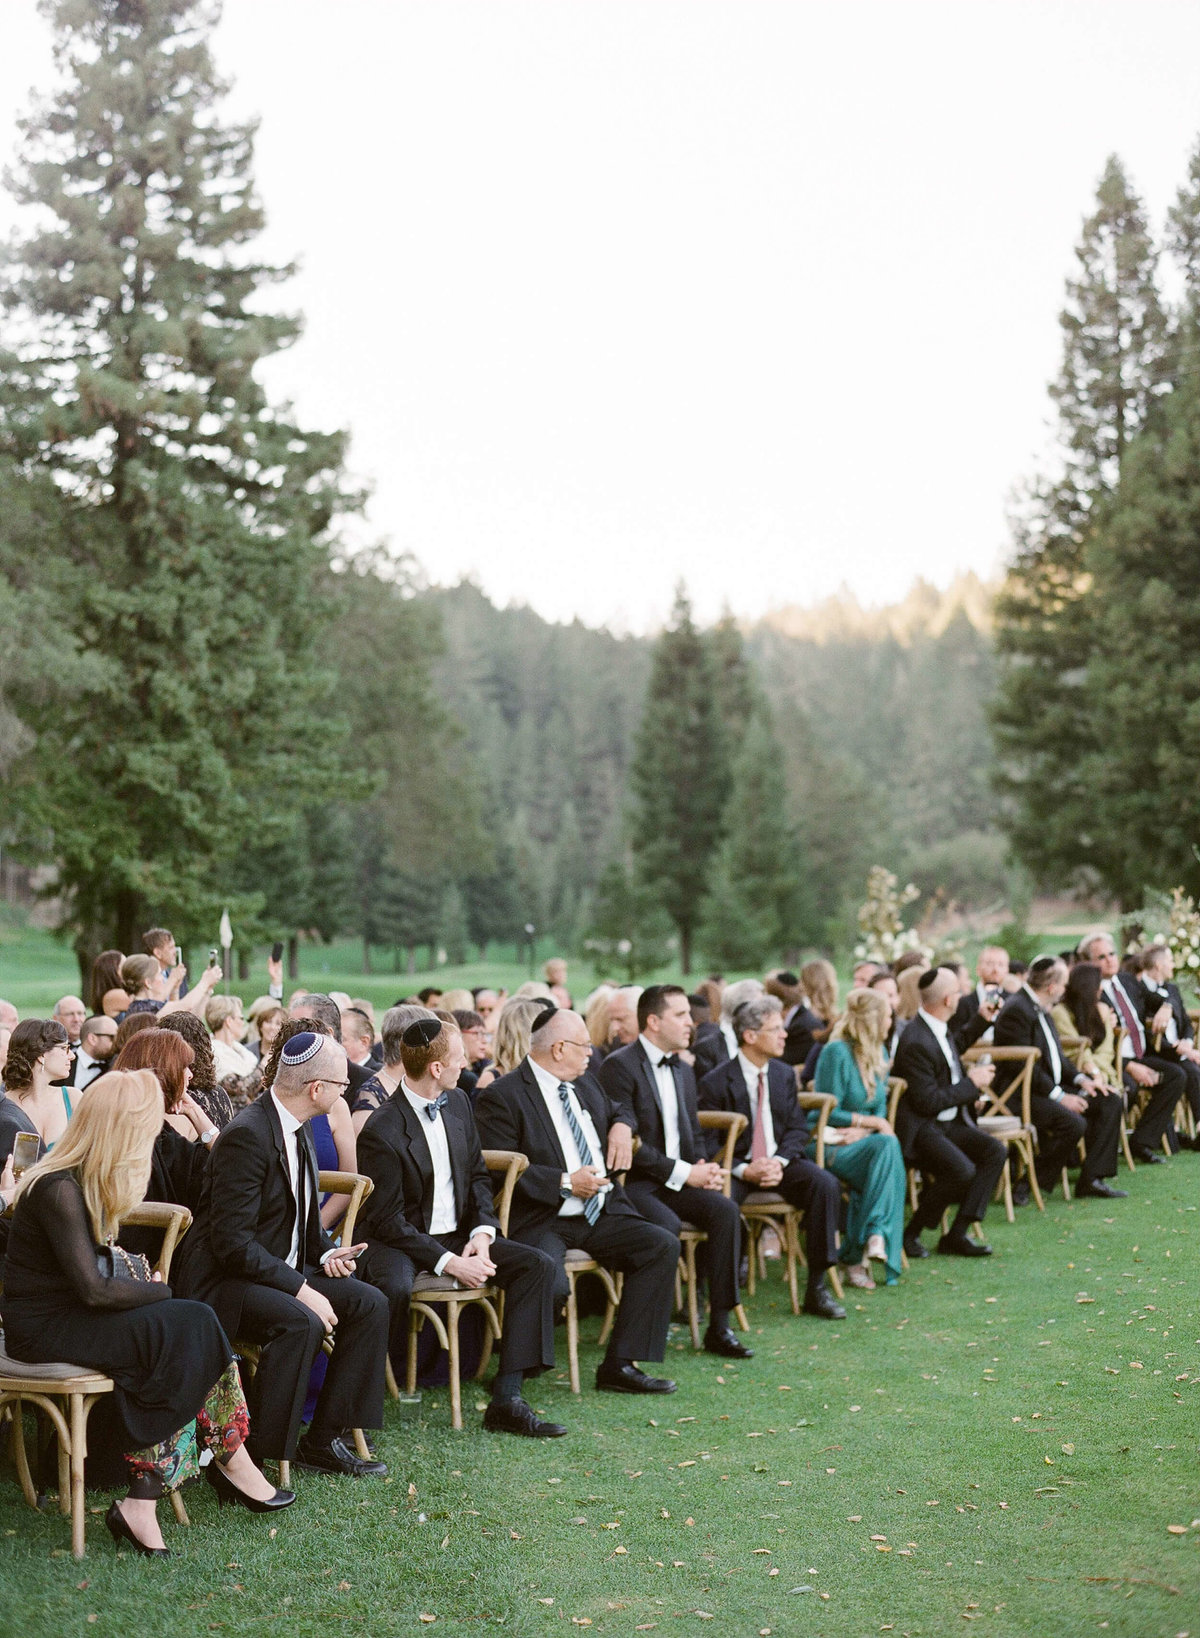 66-KTMerry-weddings-Meadowood-ceremony-guests-Napa-Valley